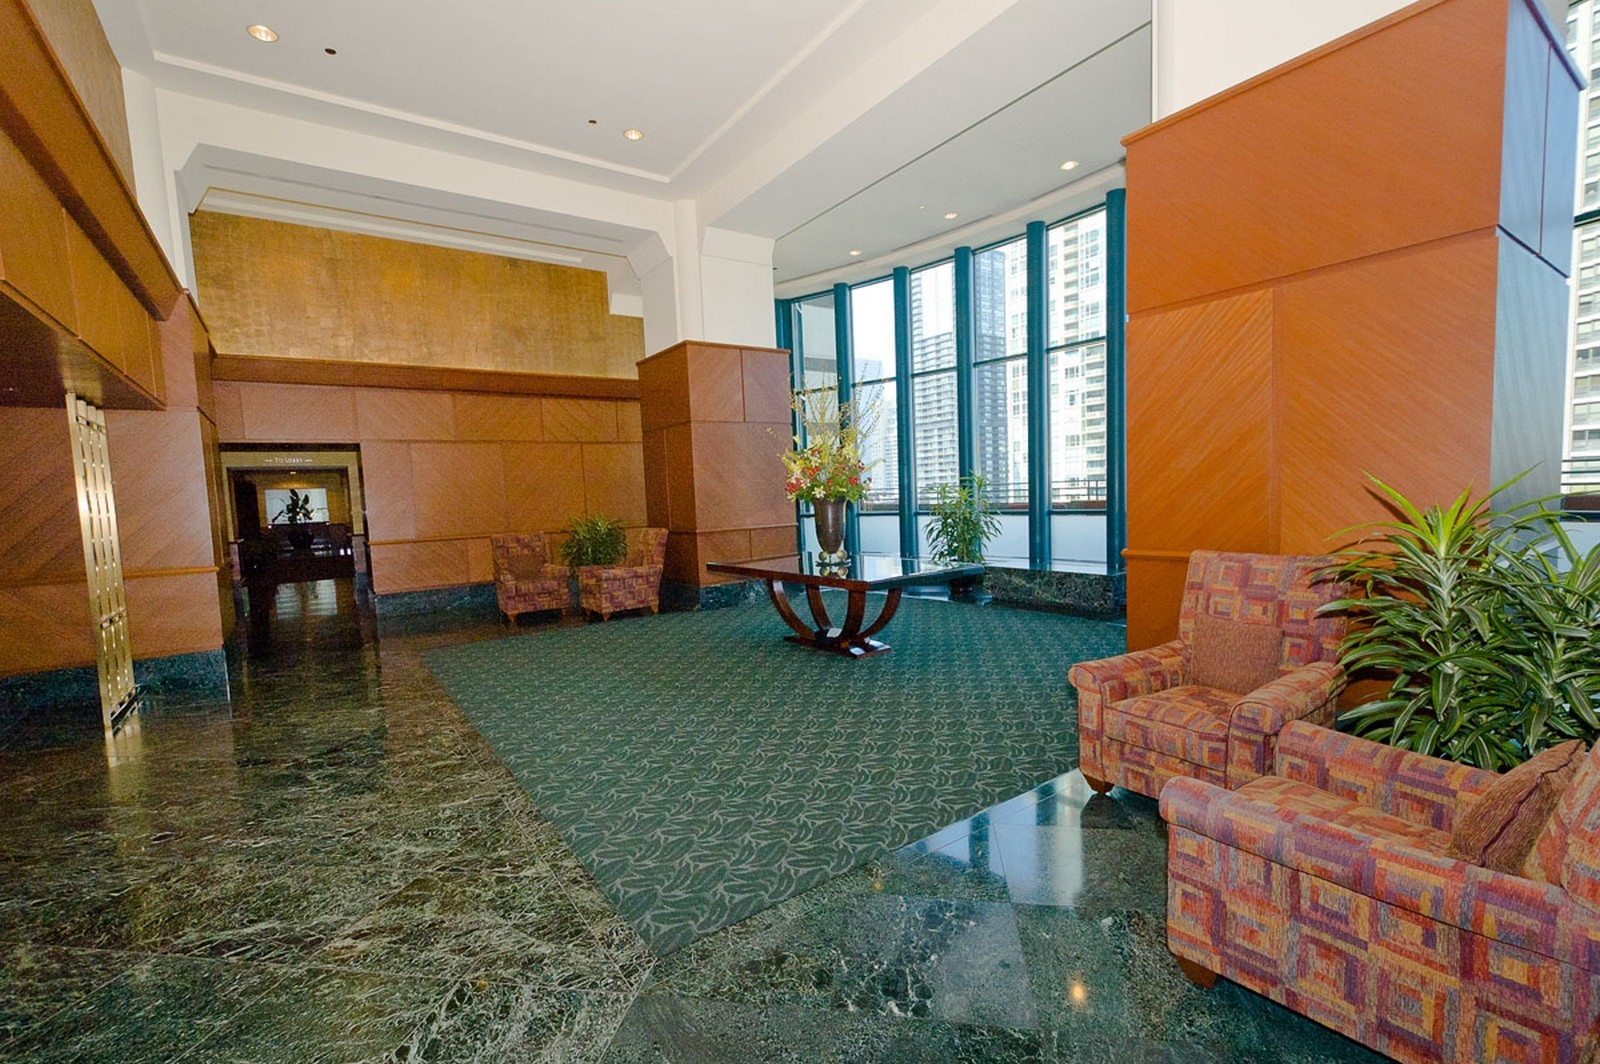 Real Estate Photography - 100 E Huron St, Apt 4201, Chicago, IL, 60611 - Lobby